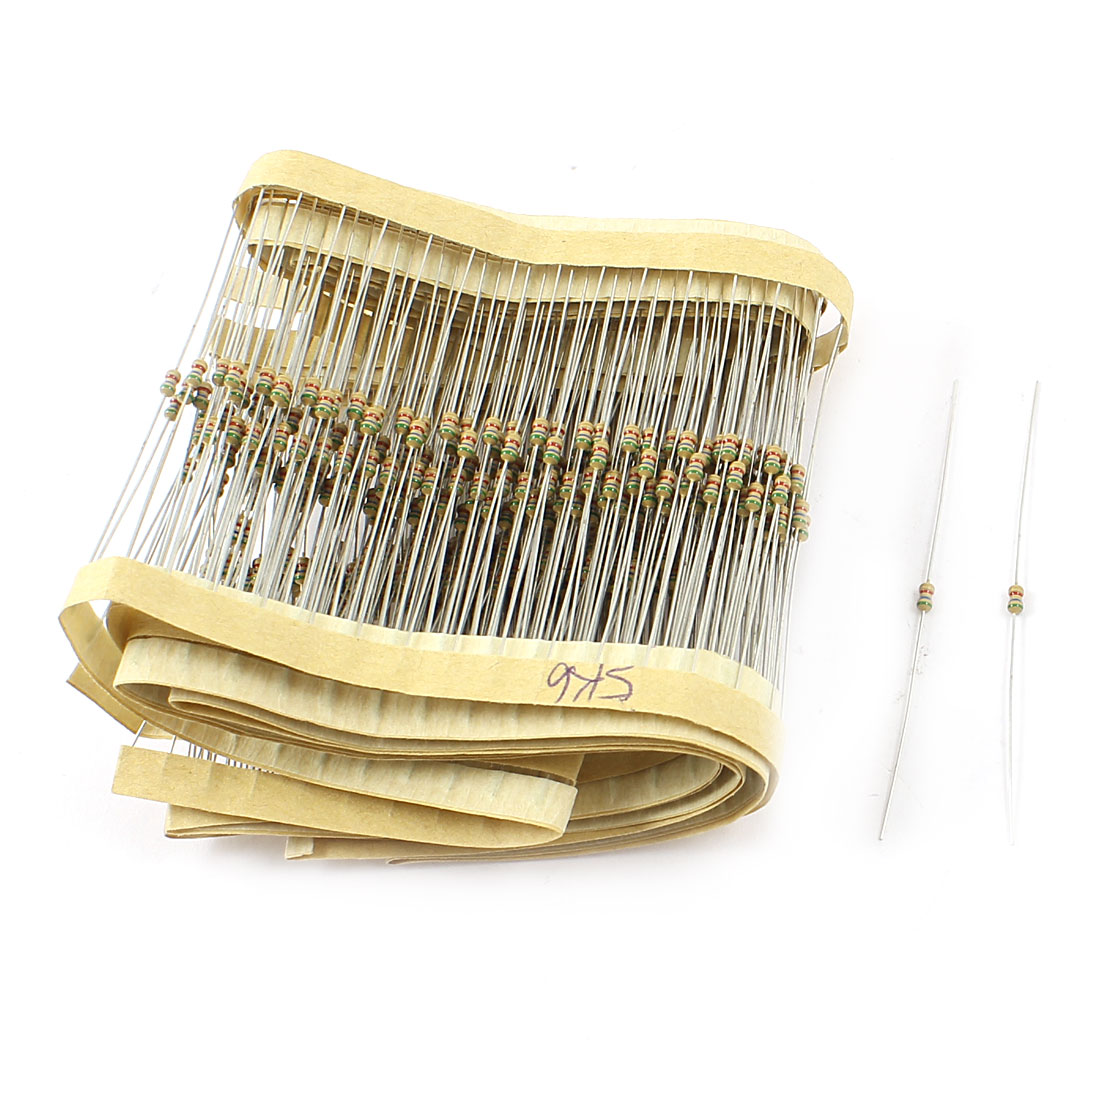 400PCS 1/6W 1/8W 5% Tolerance 5.6K Ohm Axial Leads Carbon Film Resistors